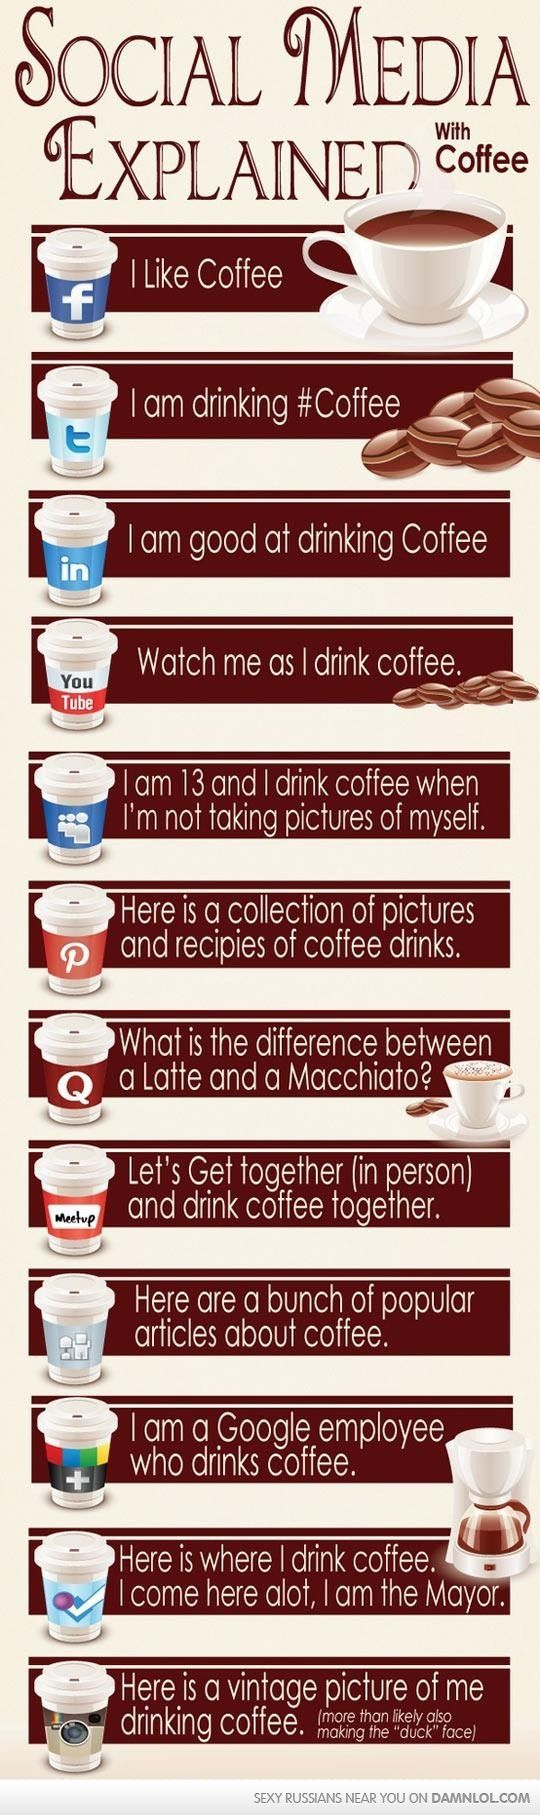 Social Media Explained | Come to Bagels and Bites Cafe in Brighton, MI for all of your bagel and coffee needs! Feel free to call (810) 220-2333 or visit our website www.bagelsandbites.com for more information!